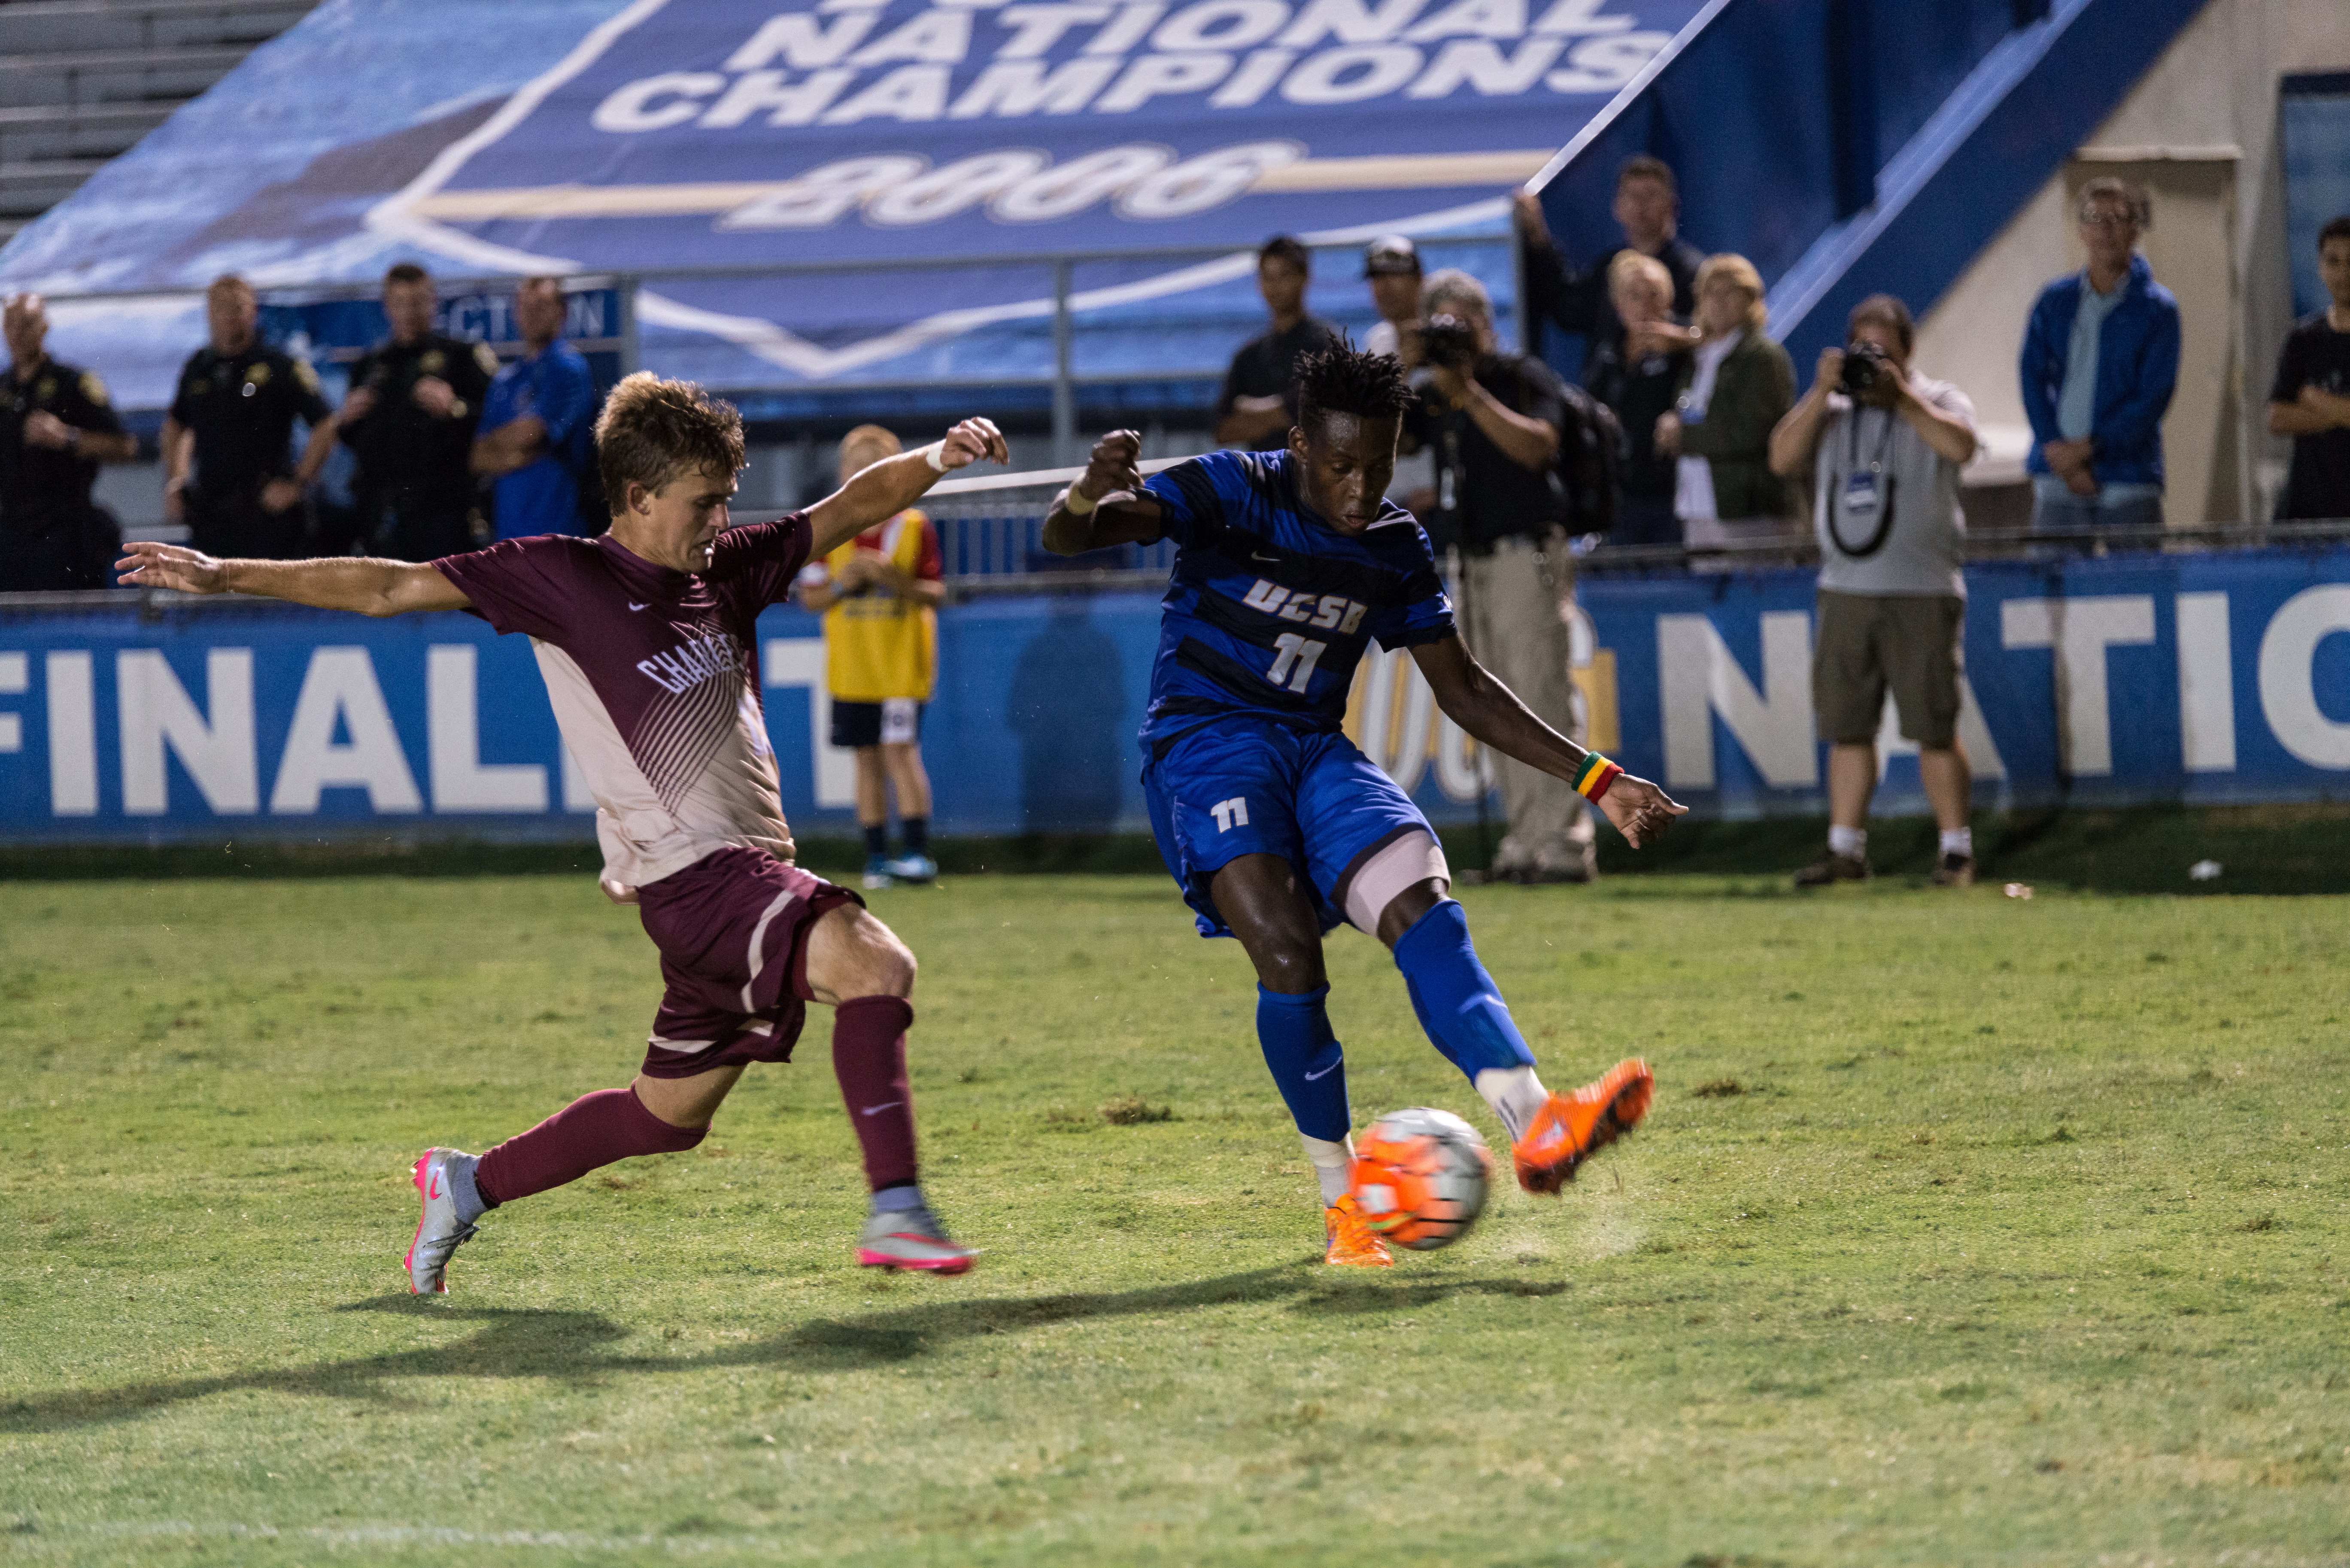 Geoffrey Acheampong crosses the ball after juking past the Charleston defense.